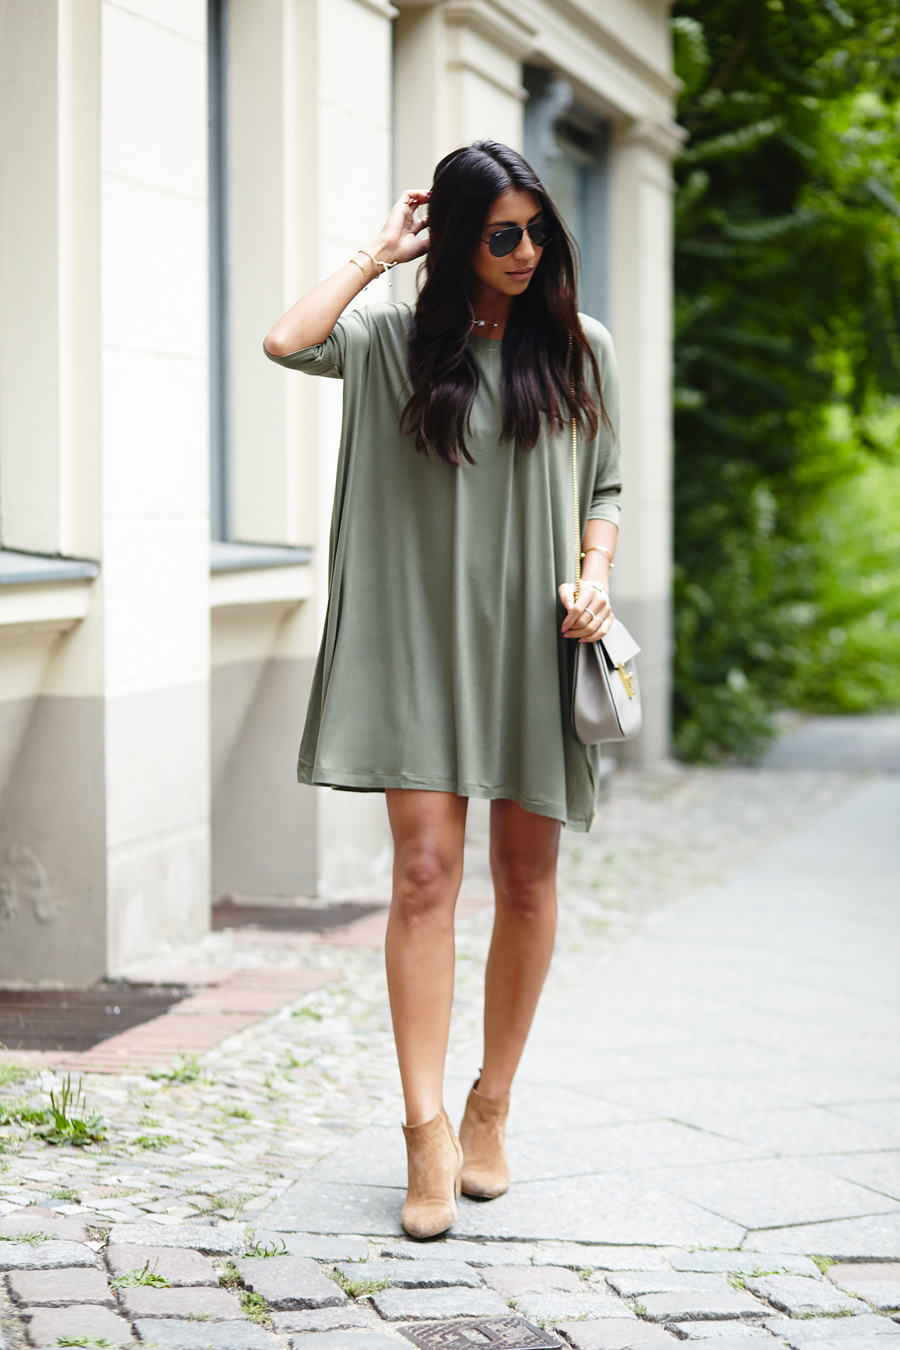 fa531ec39e Cute Casual Summer Outfits  This Is What You Should Wear - Just The ...